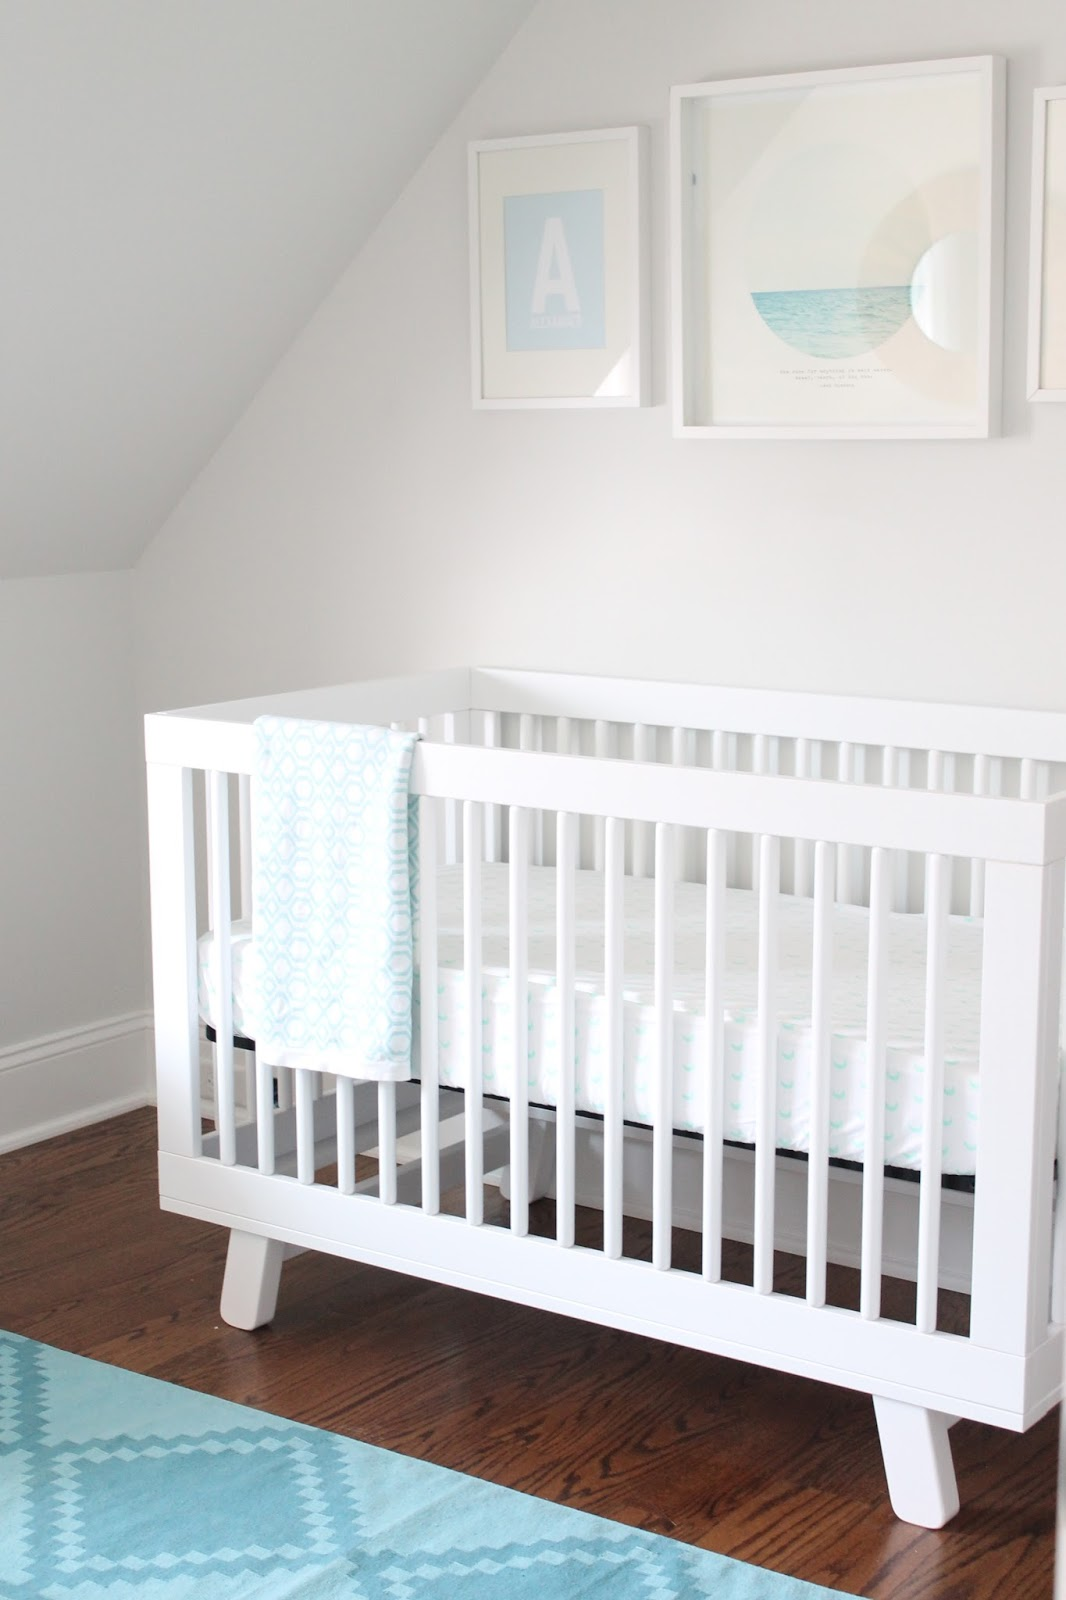 Here S A Look Around This Beautiful Nursery That Was Collaborative And Fun Project The Whole Family Took Part In Source List For Almost Everything At